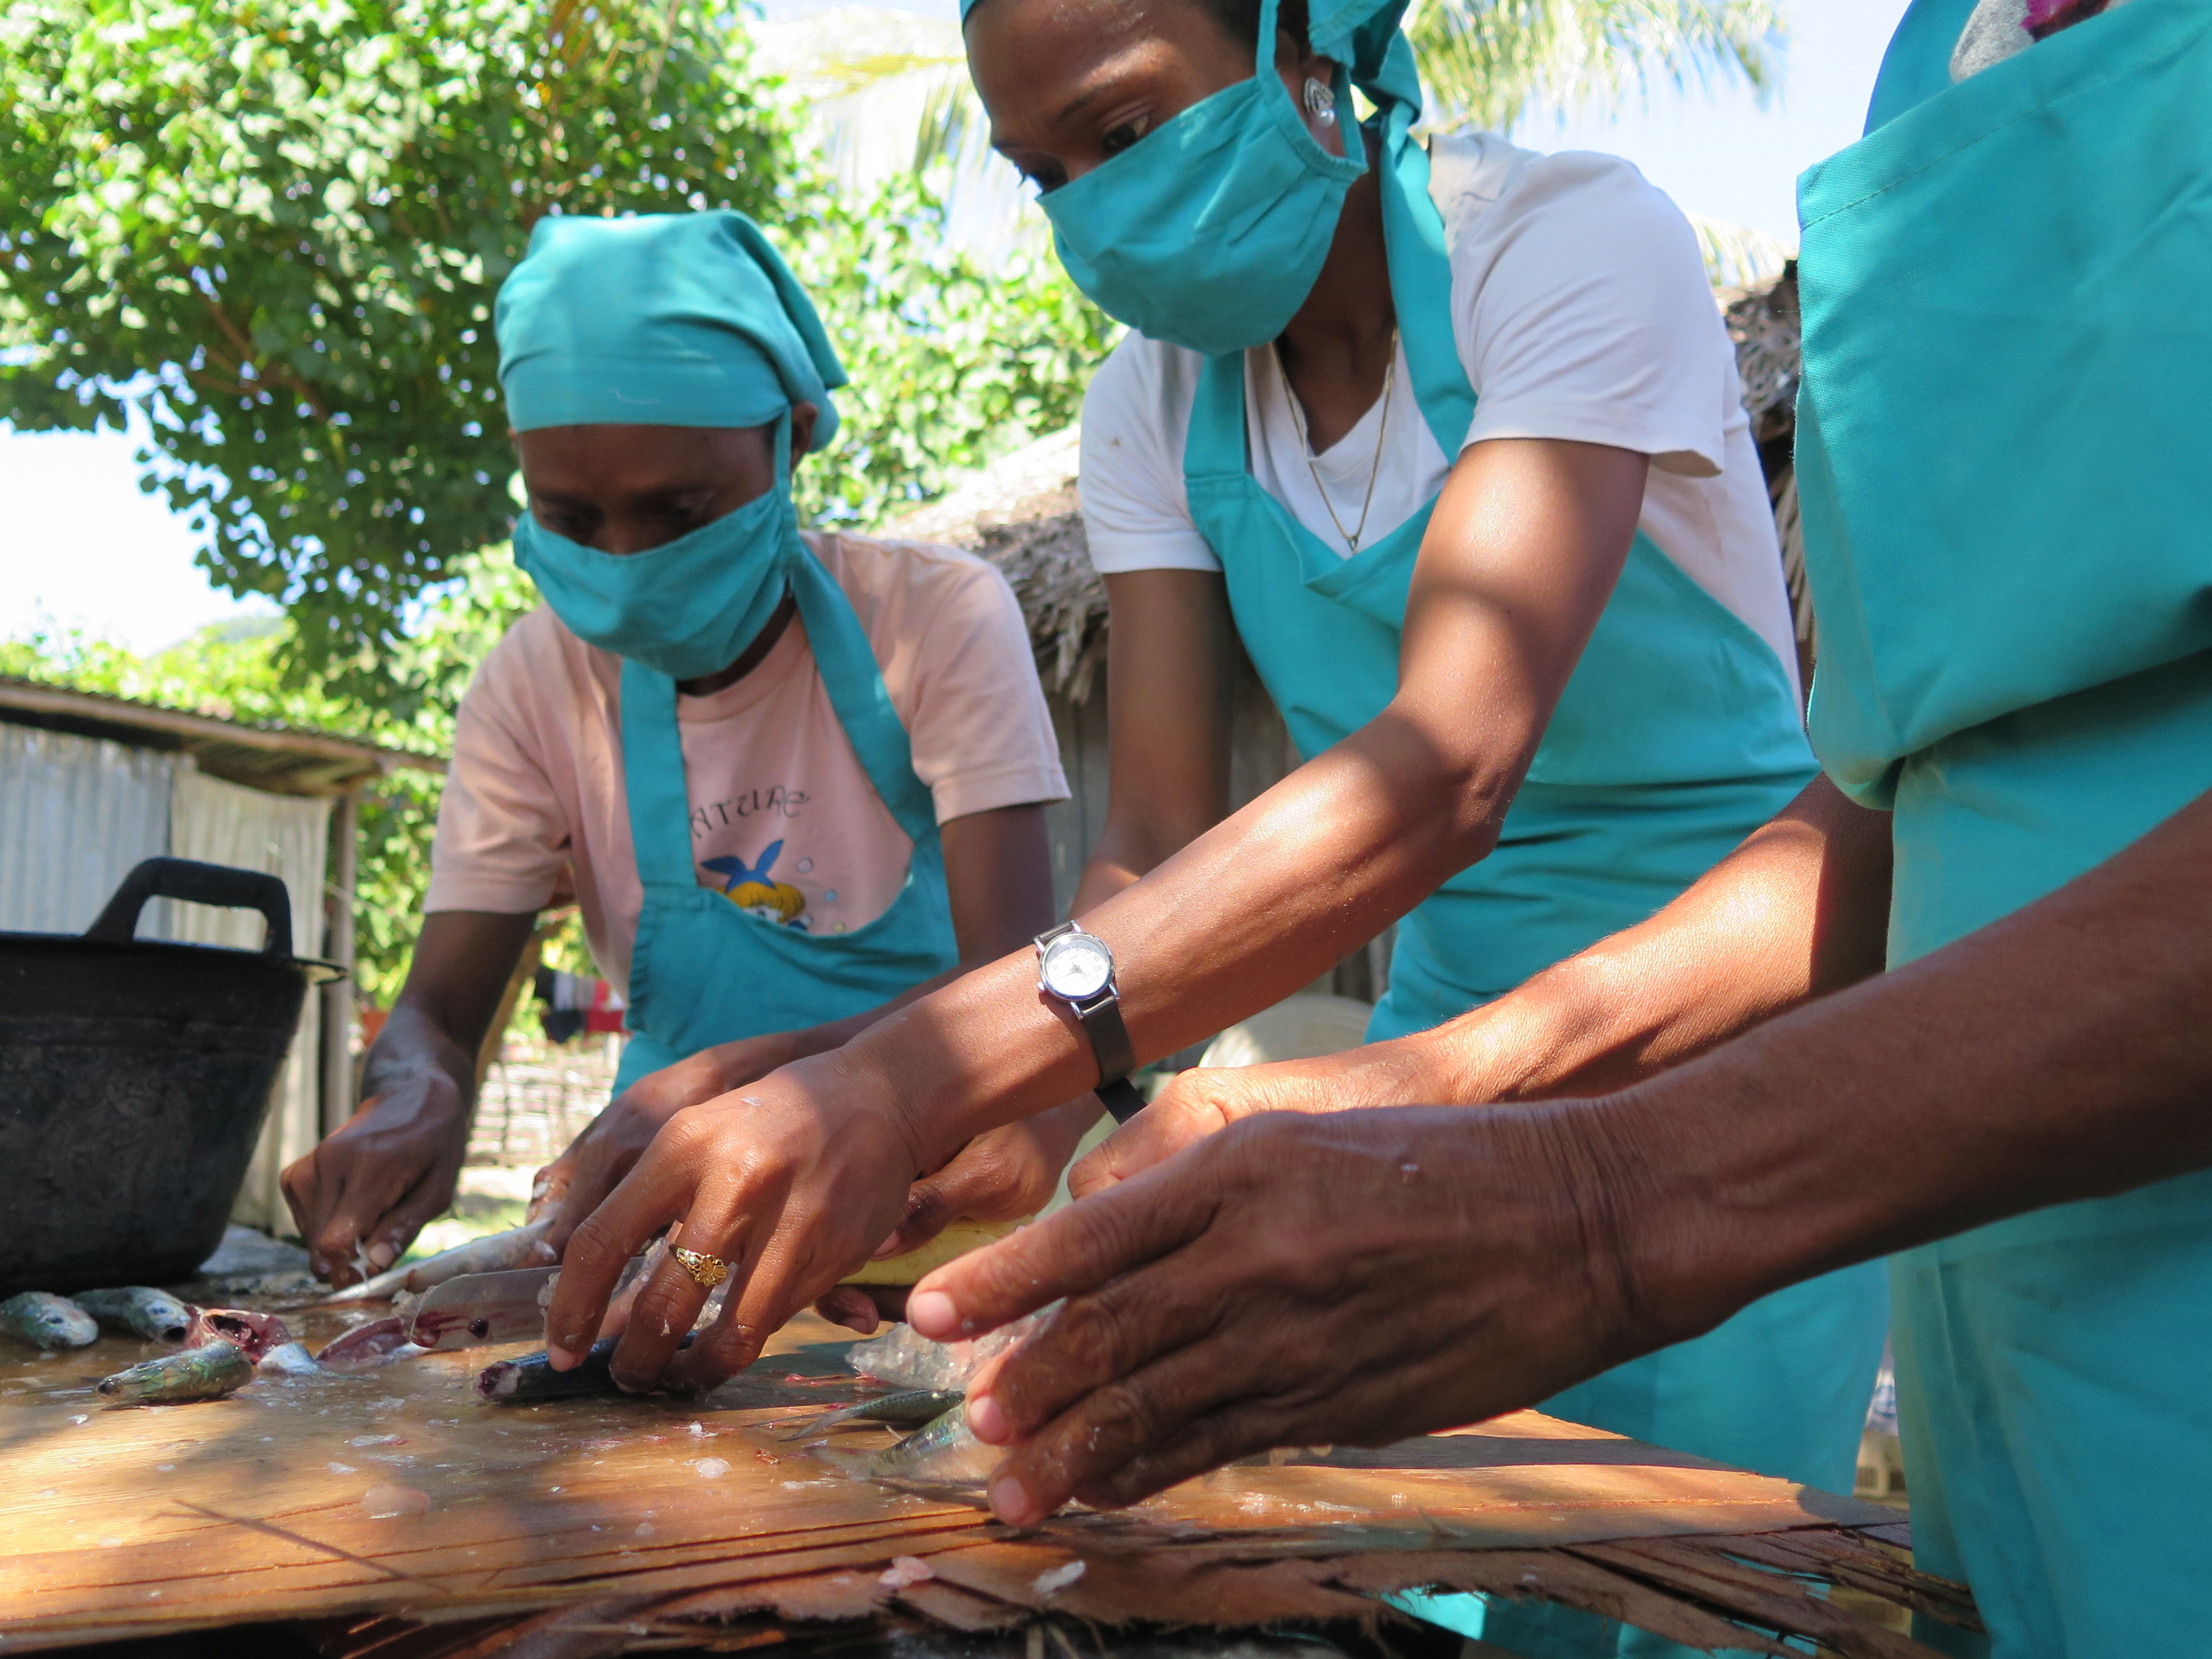 Youth women find economic opportunities in the processing and trade of small fish in Timor-Leste